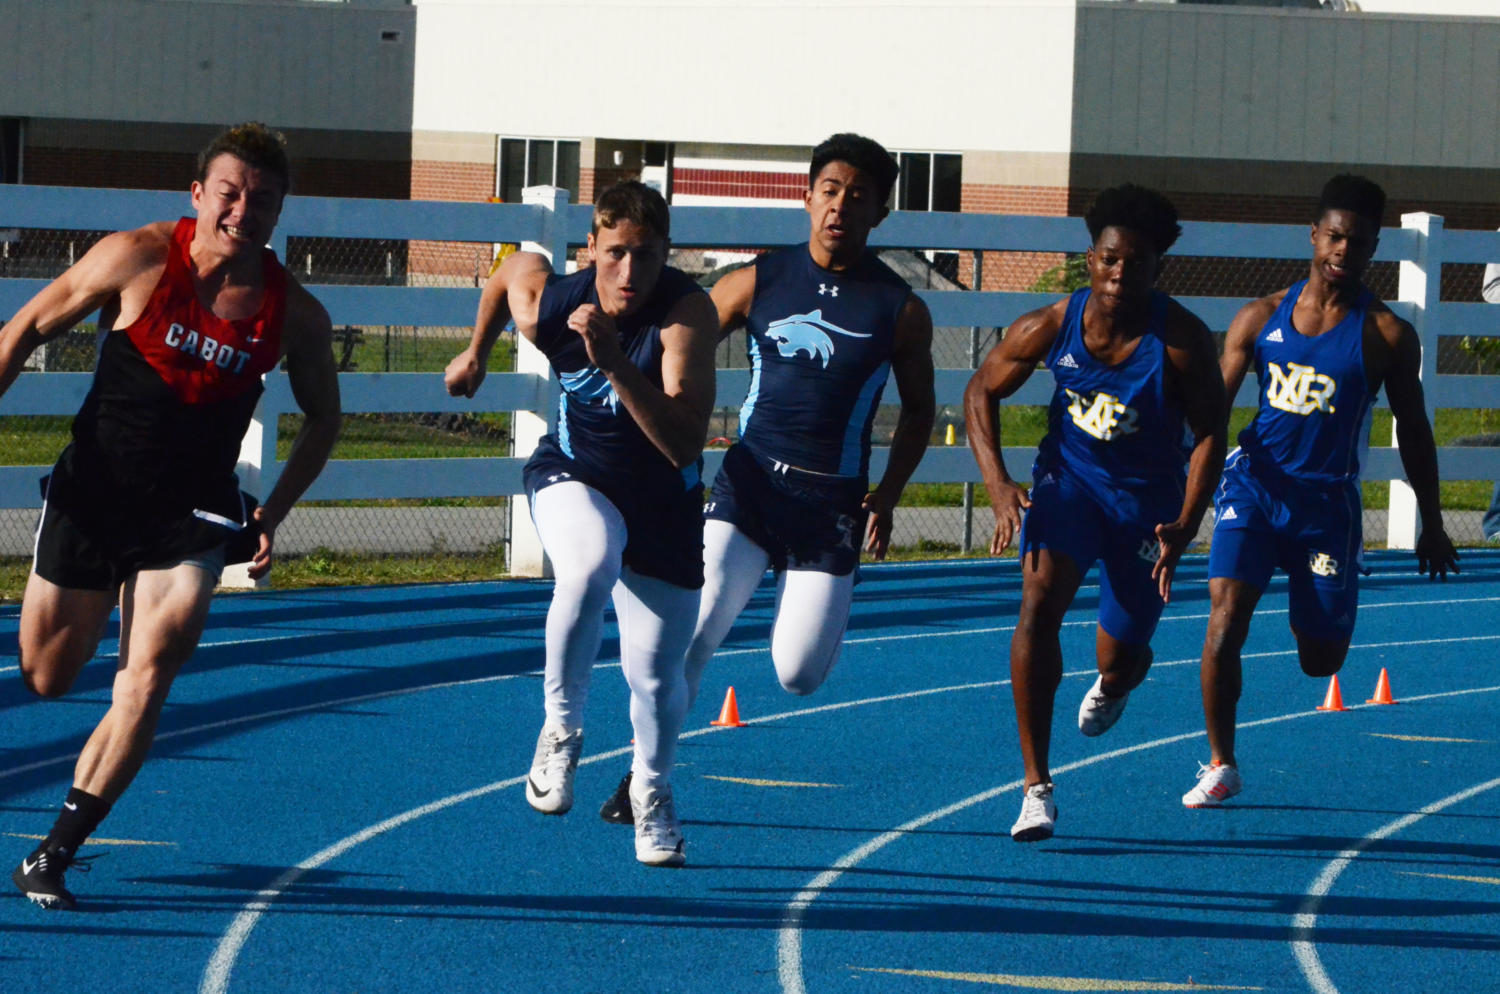 Wind, injuries factor into track finale